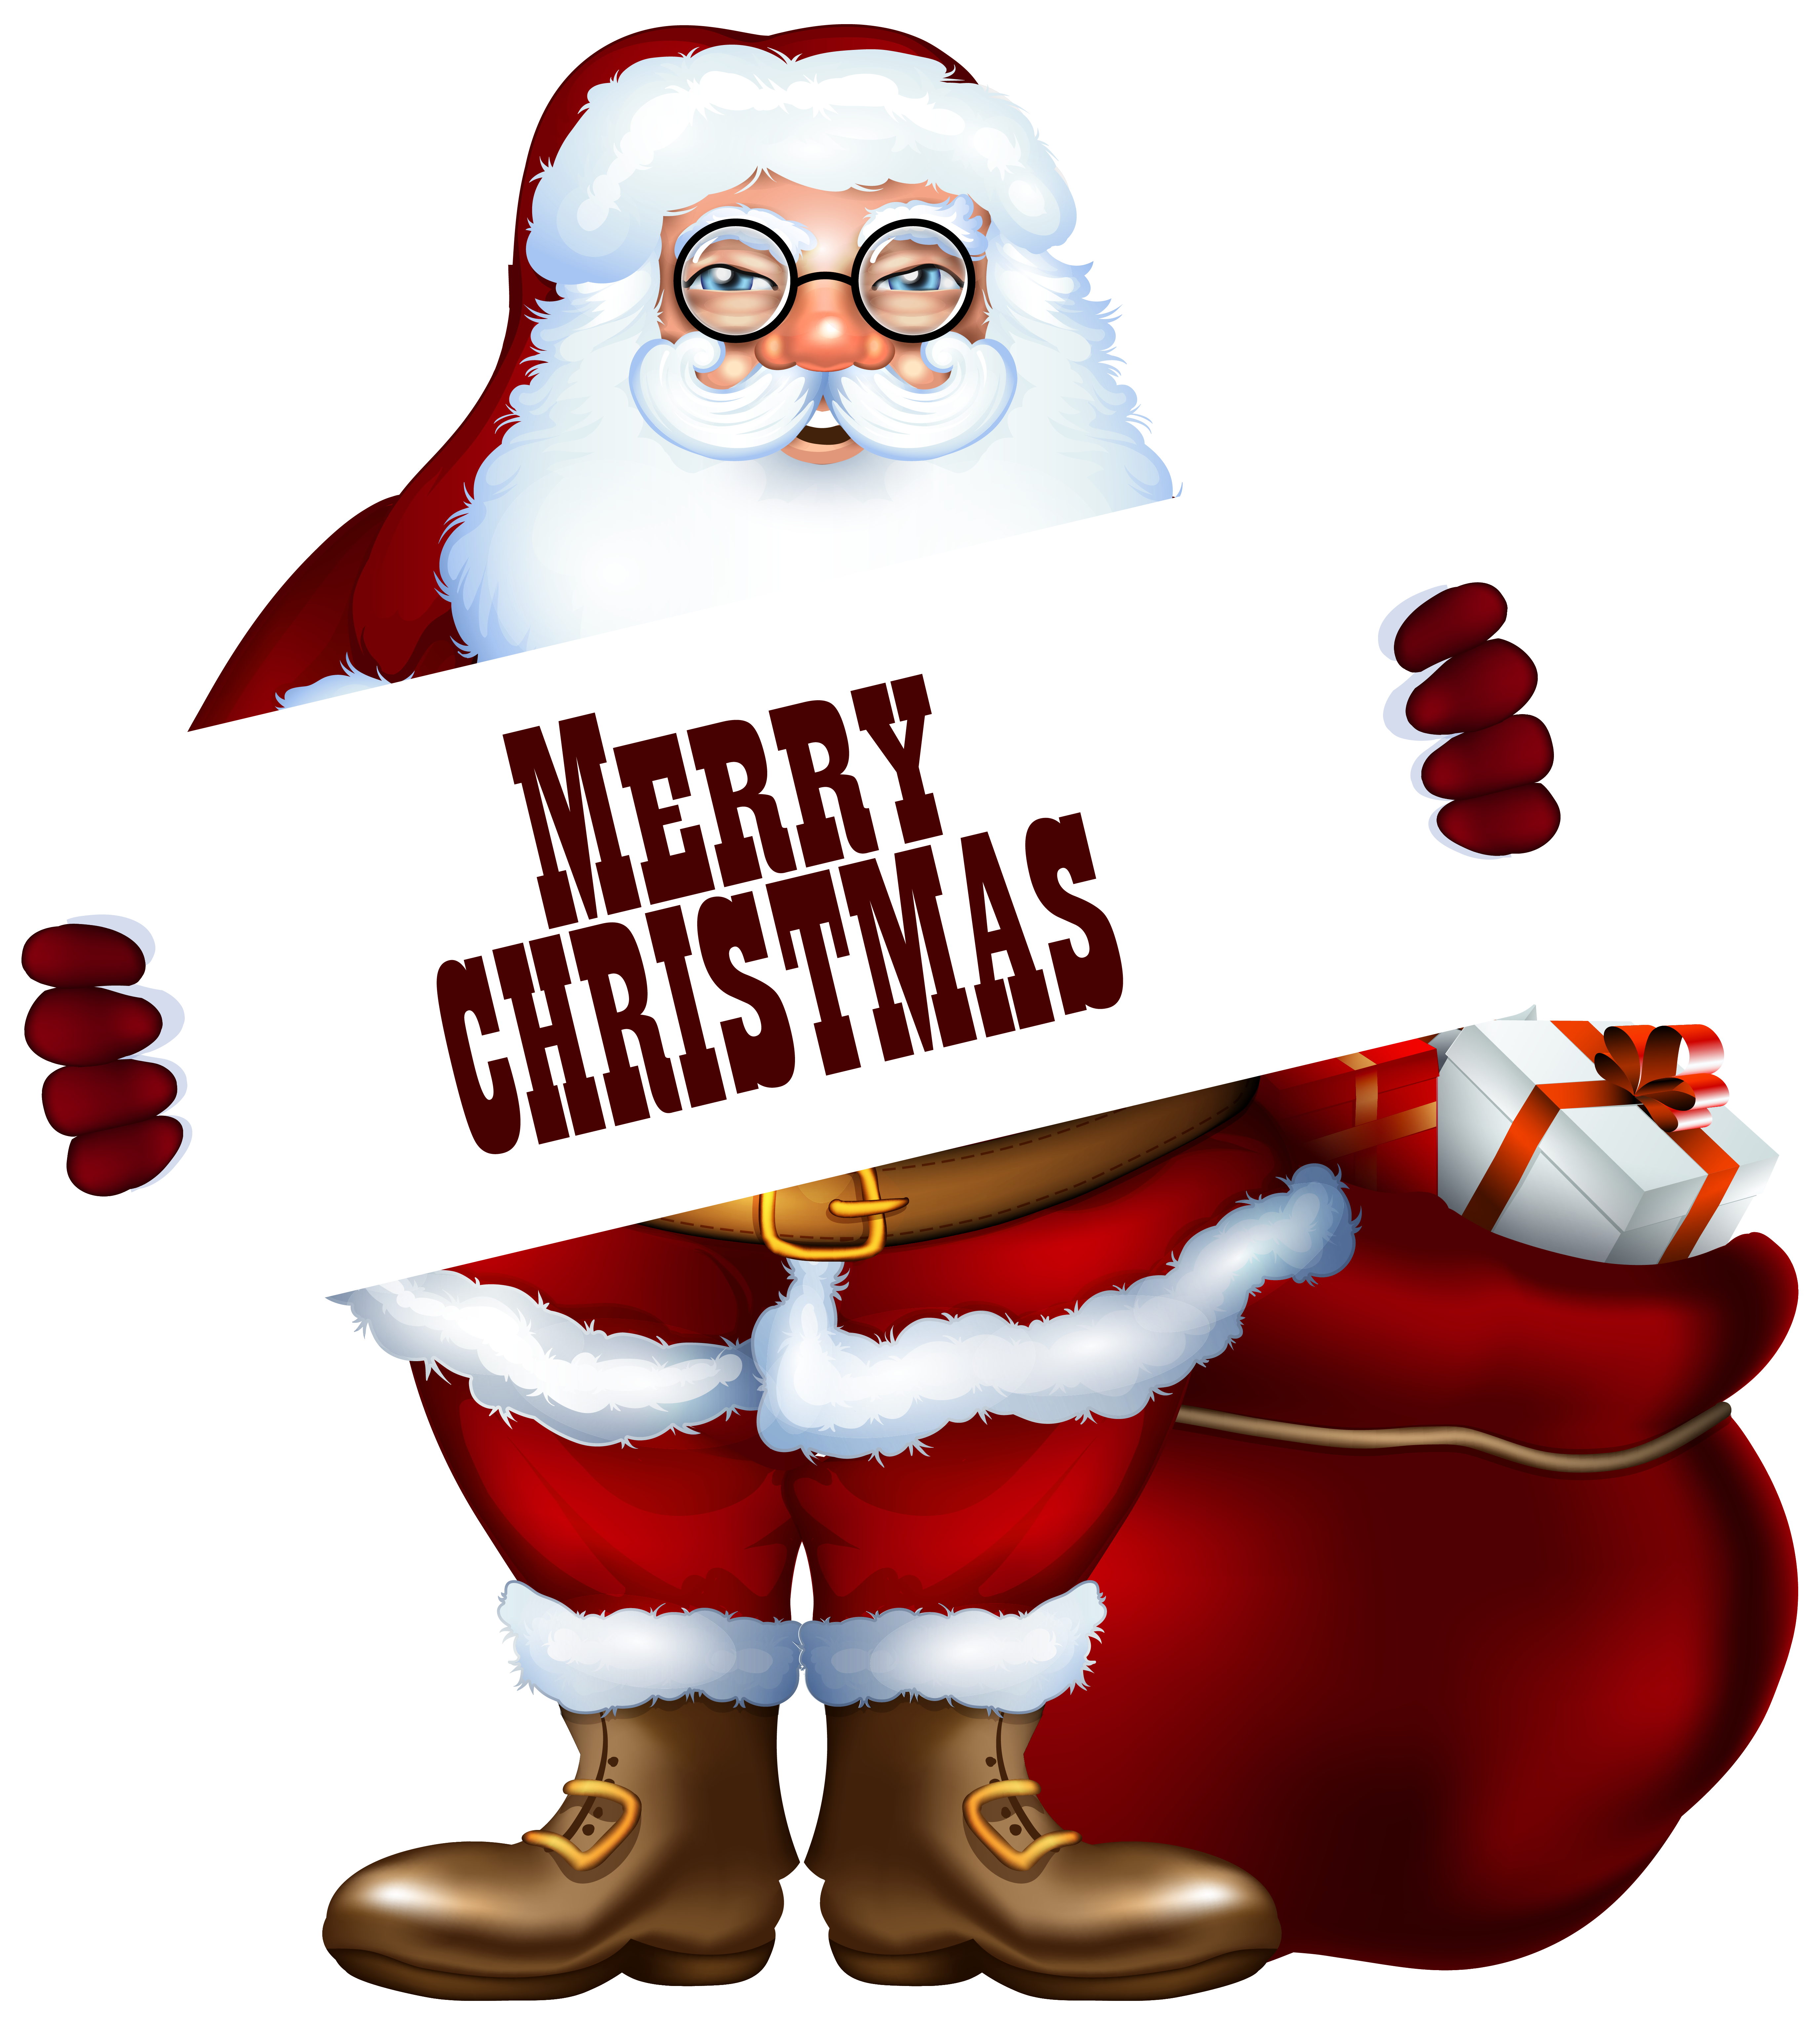 Merry christmas clipart santa. Claus with label png